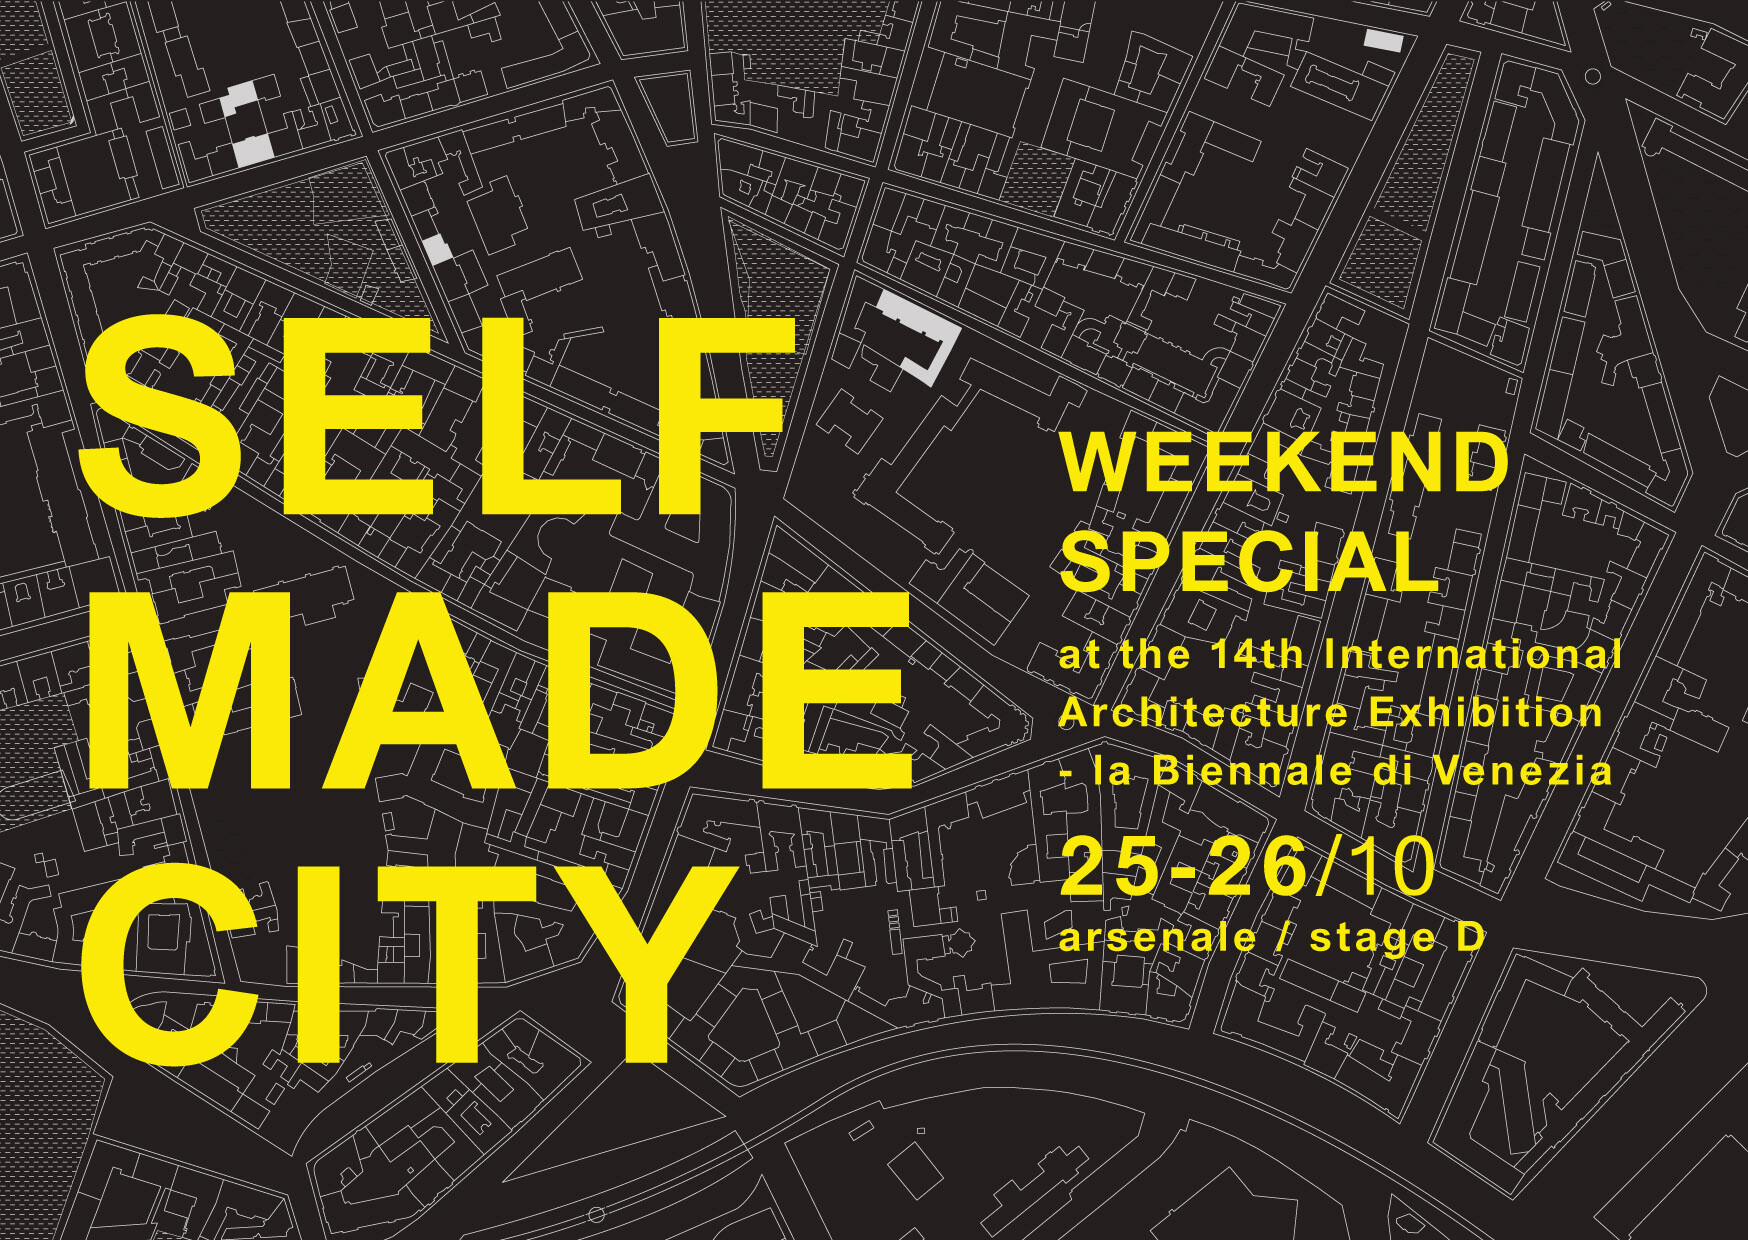 Biennale Weekend Special